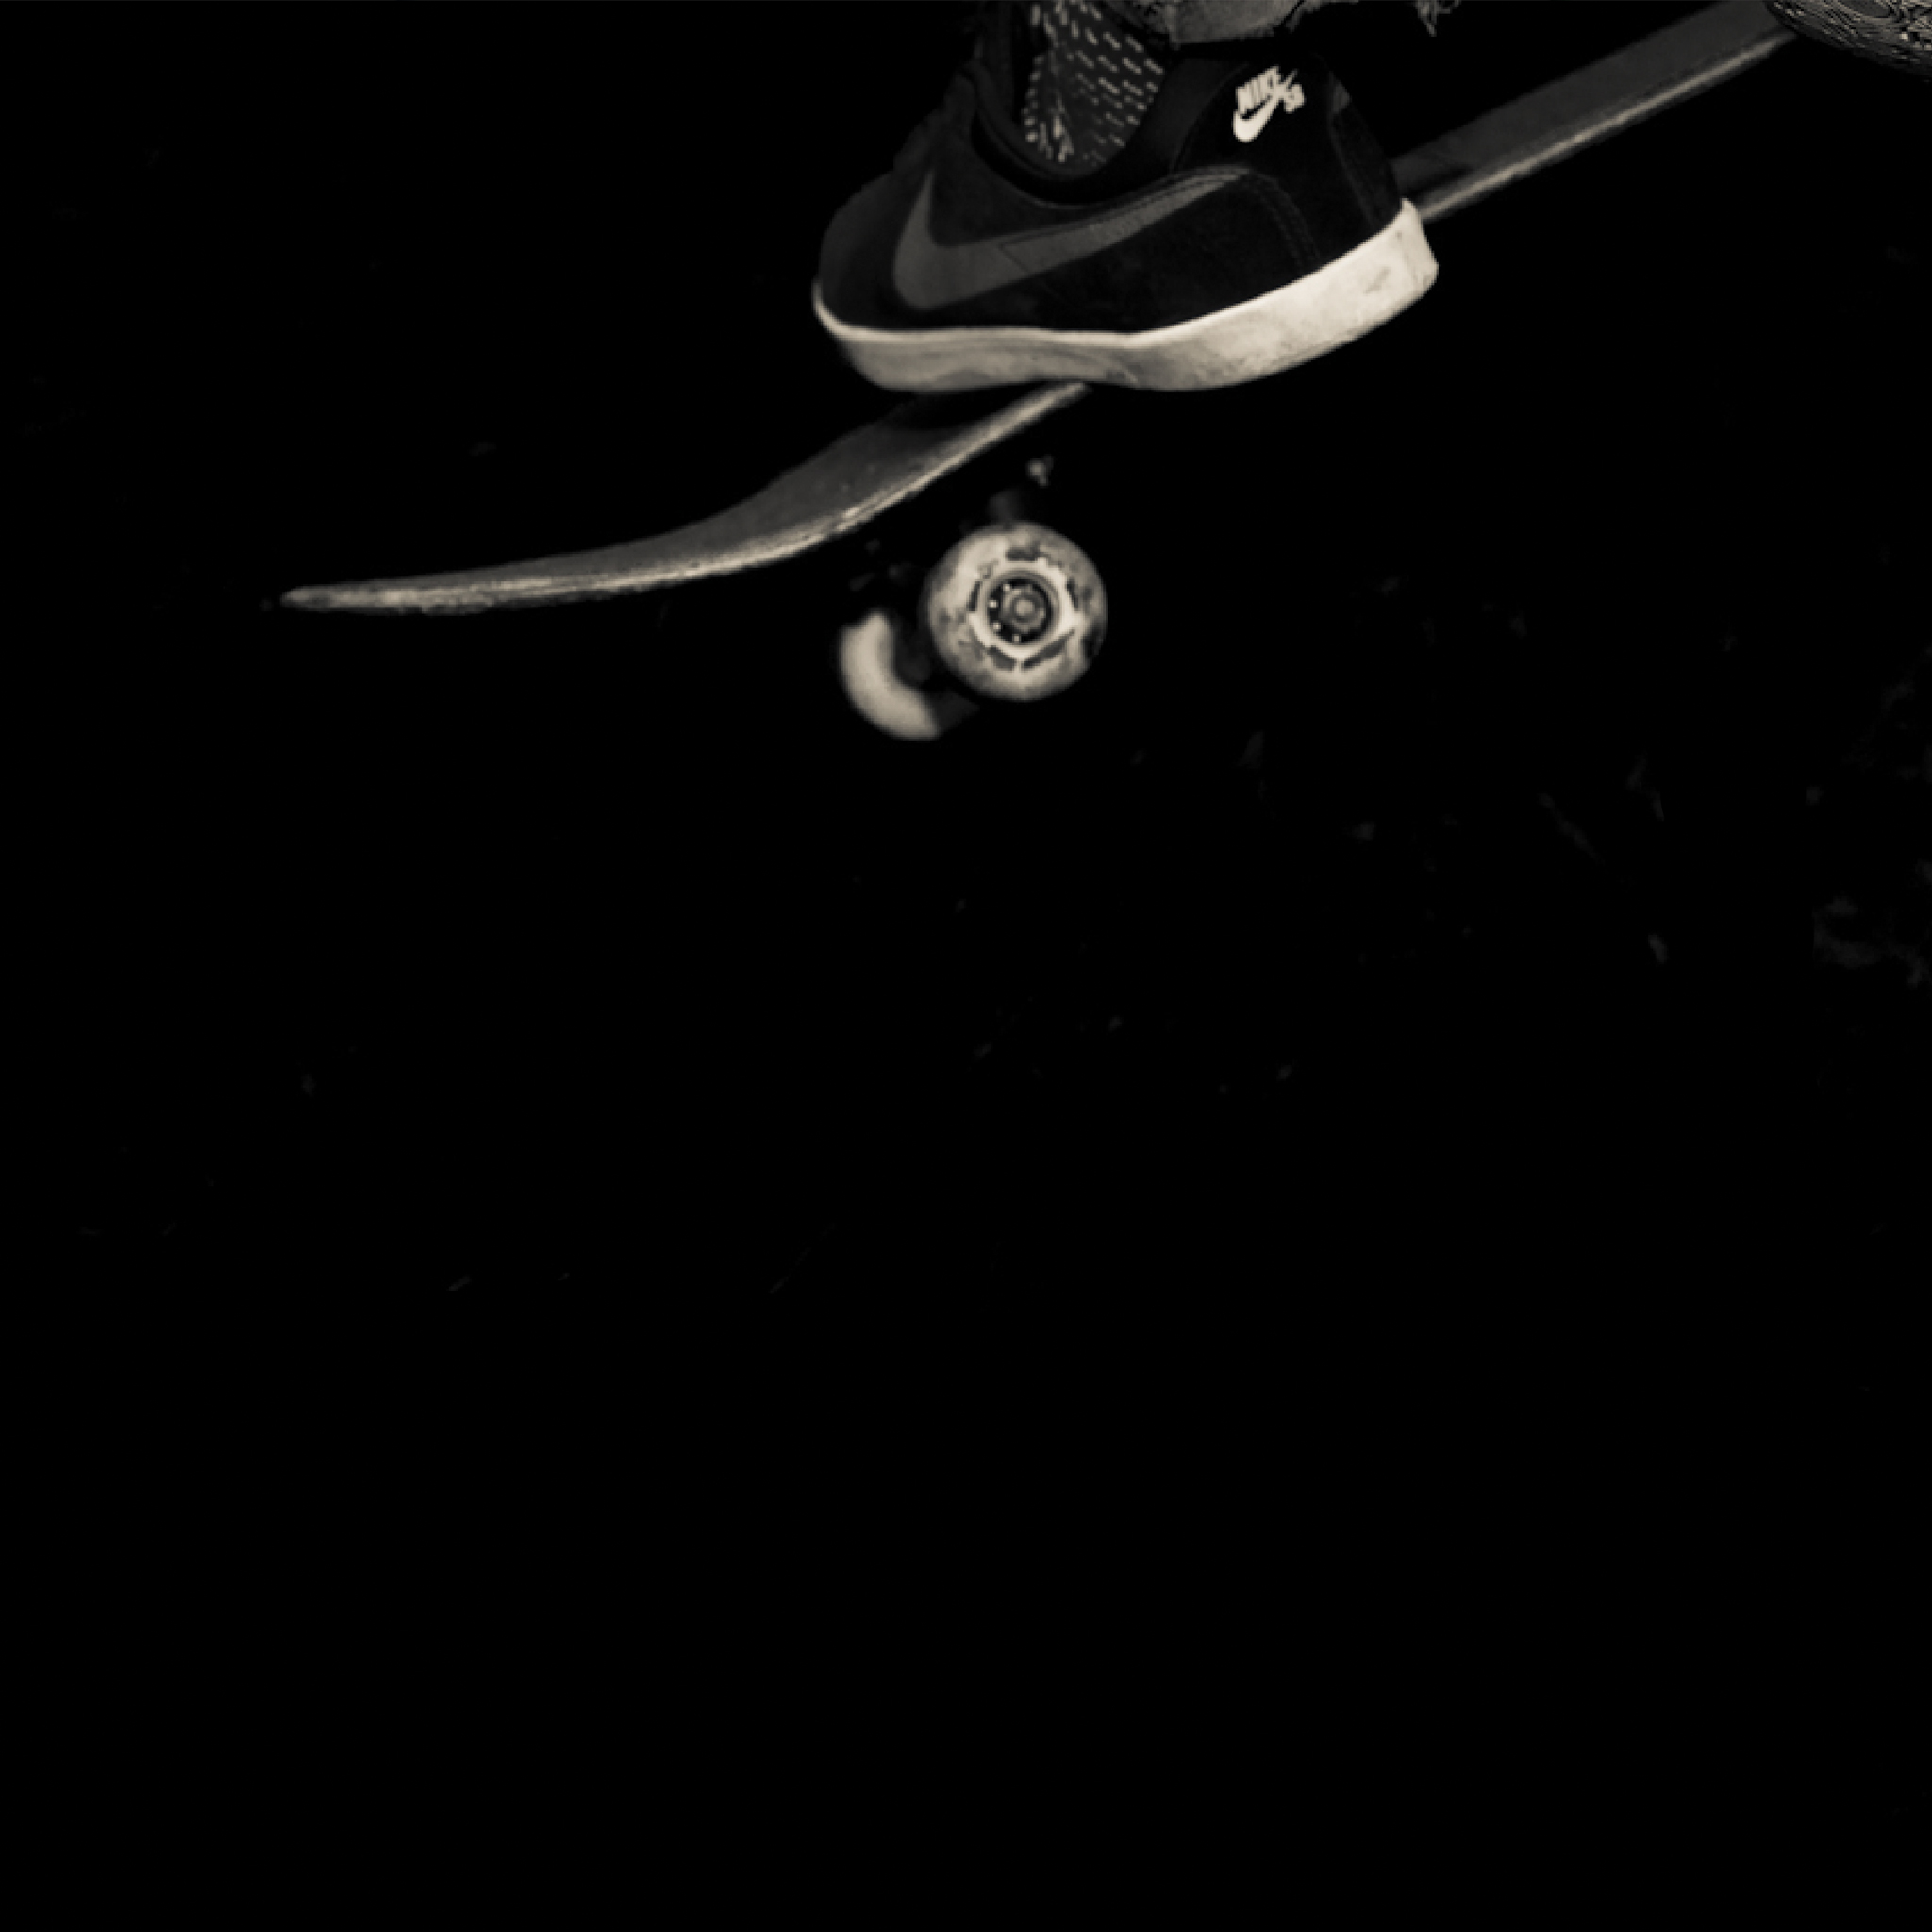 Nike Skateboard 3Wallpapers Nike Skateboard